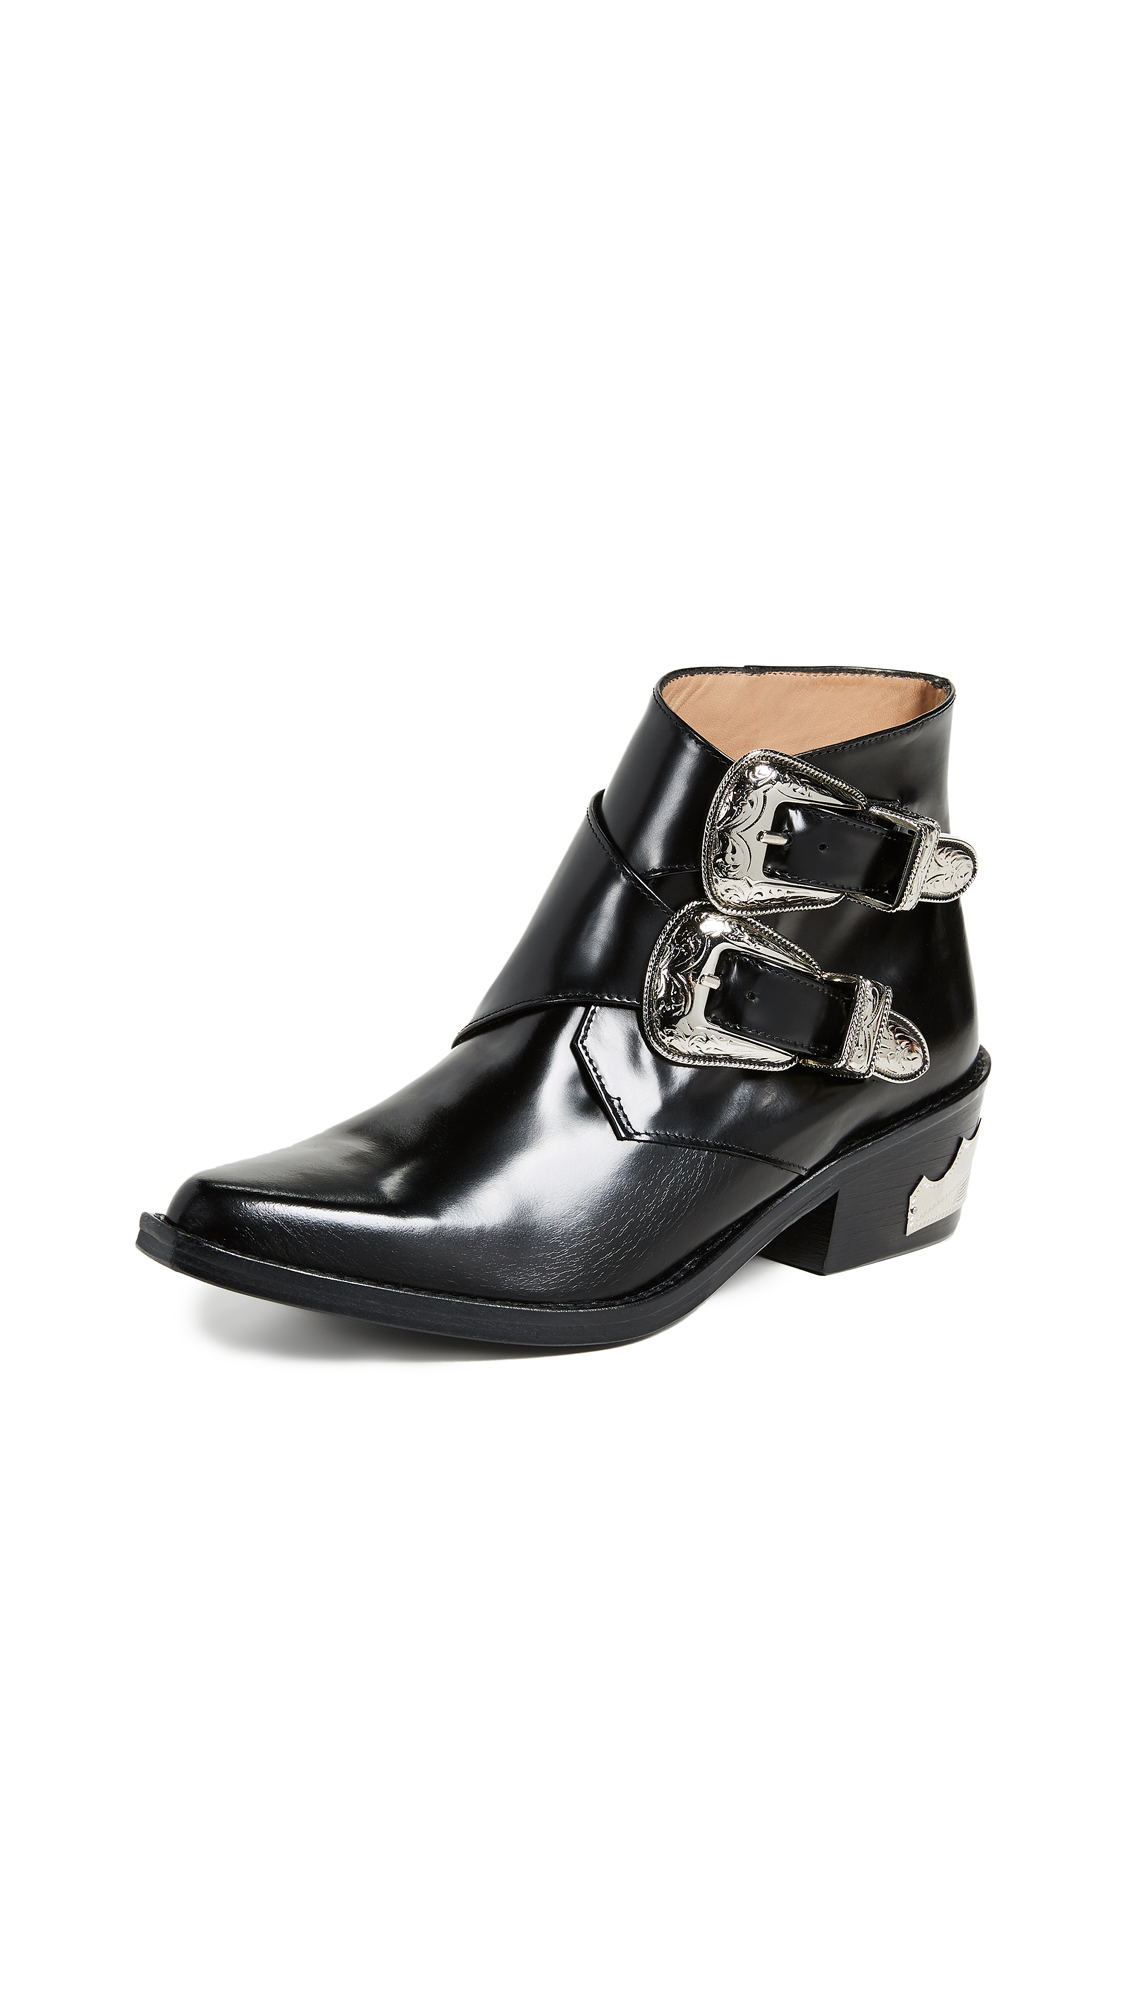 Toga Pulla Two Band Buckle Boots - Black